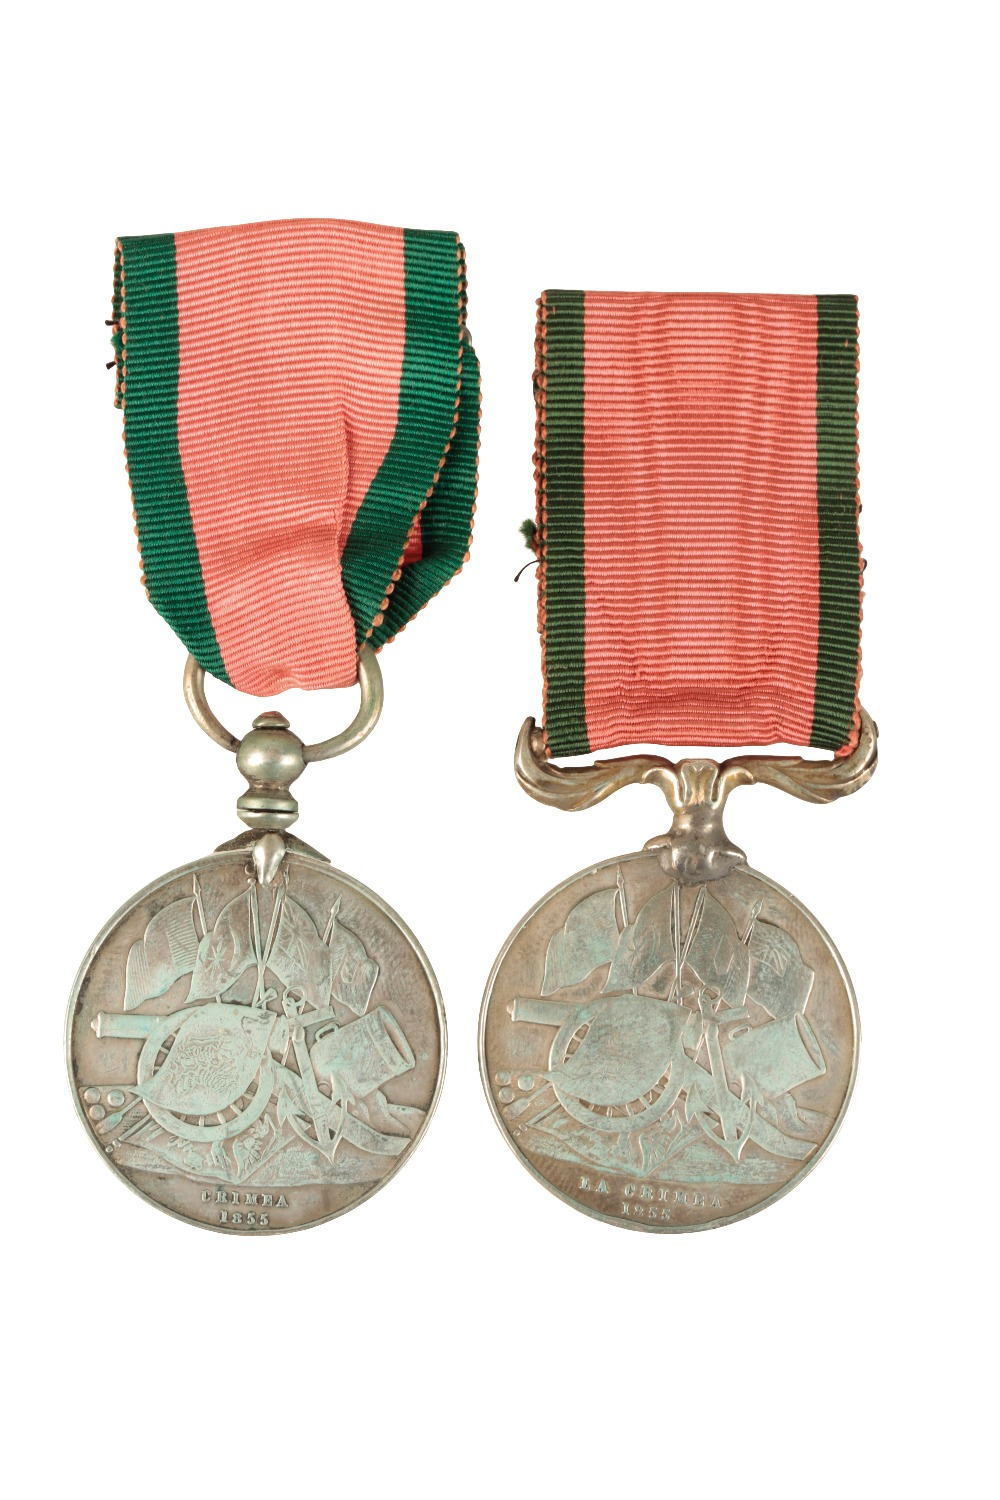 Lot 49 - PAIR OF FRENCH CRIMEA & TURKISH CRIMEA MEDALS